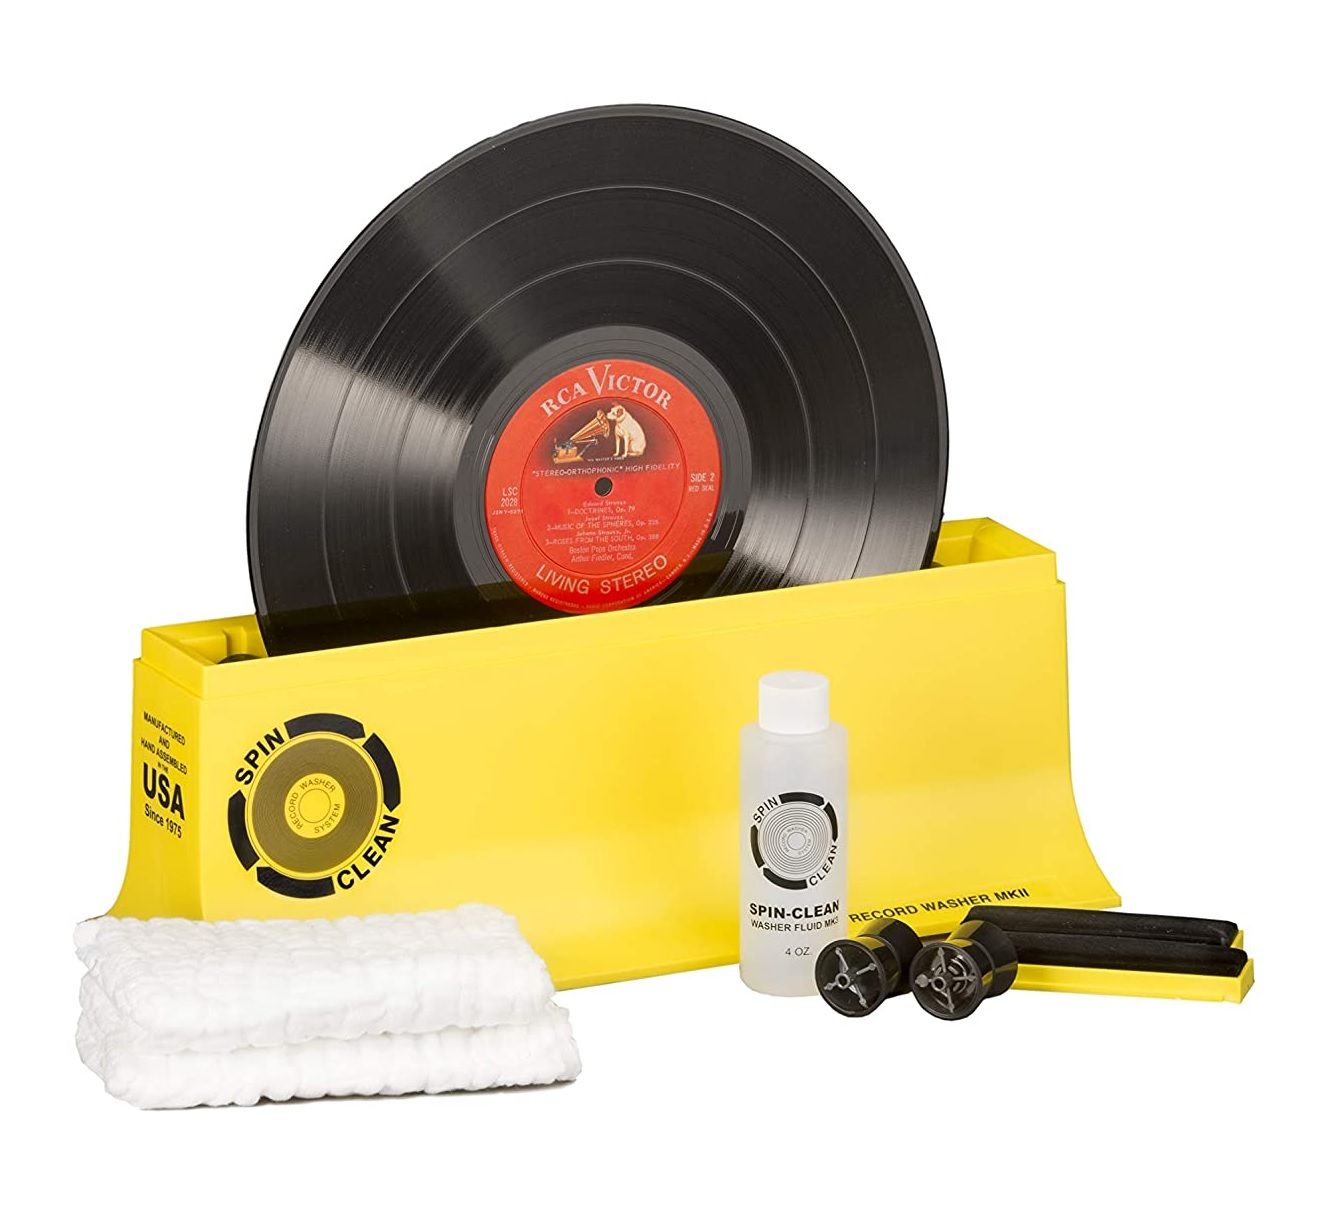 Spin-Clean Record Washer MKII Complete Kit - Spin-Clean - Musik - Spin-Clean - 0857720005132 - 18. mars 2019